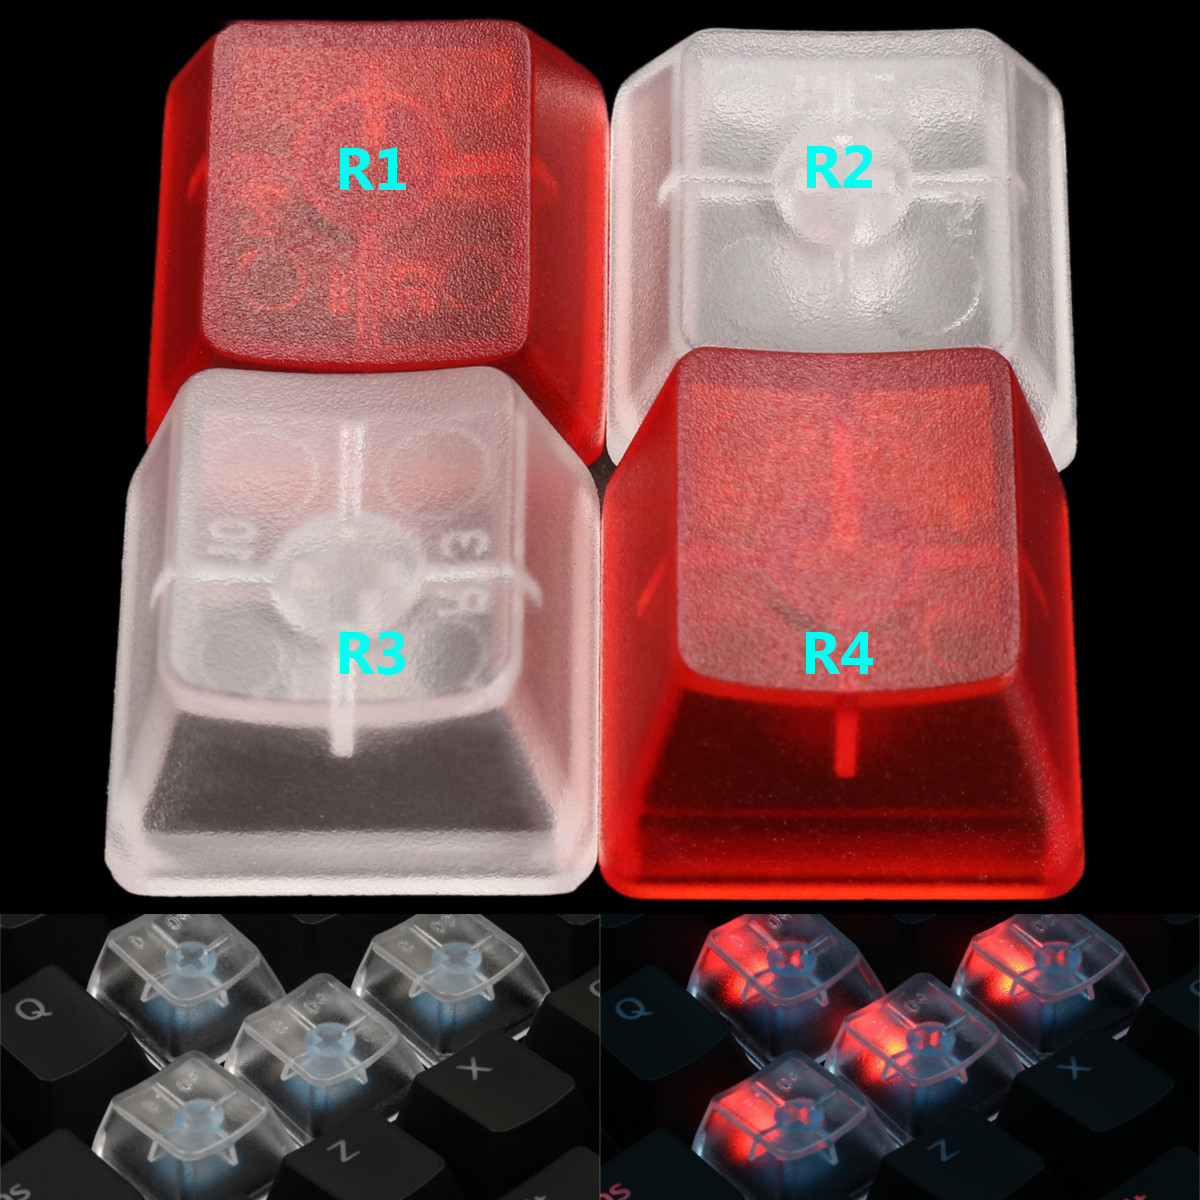 5PCs Transparent Keycap Clear All Height Red White for Mechanical Keyboard R1 R2 R3 R4